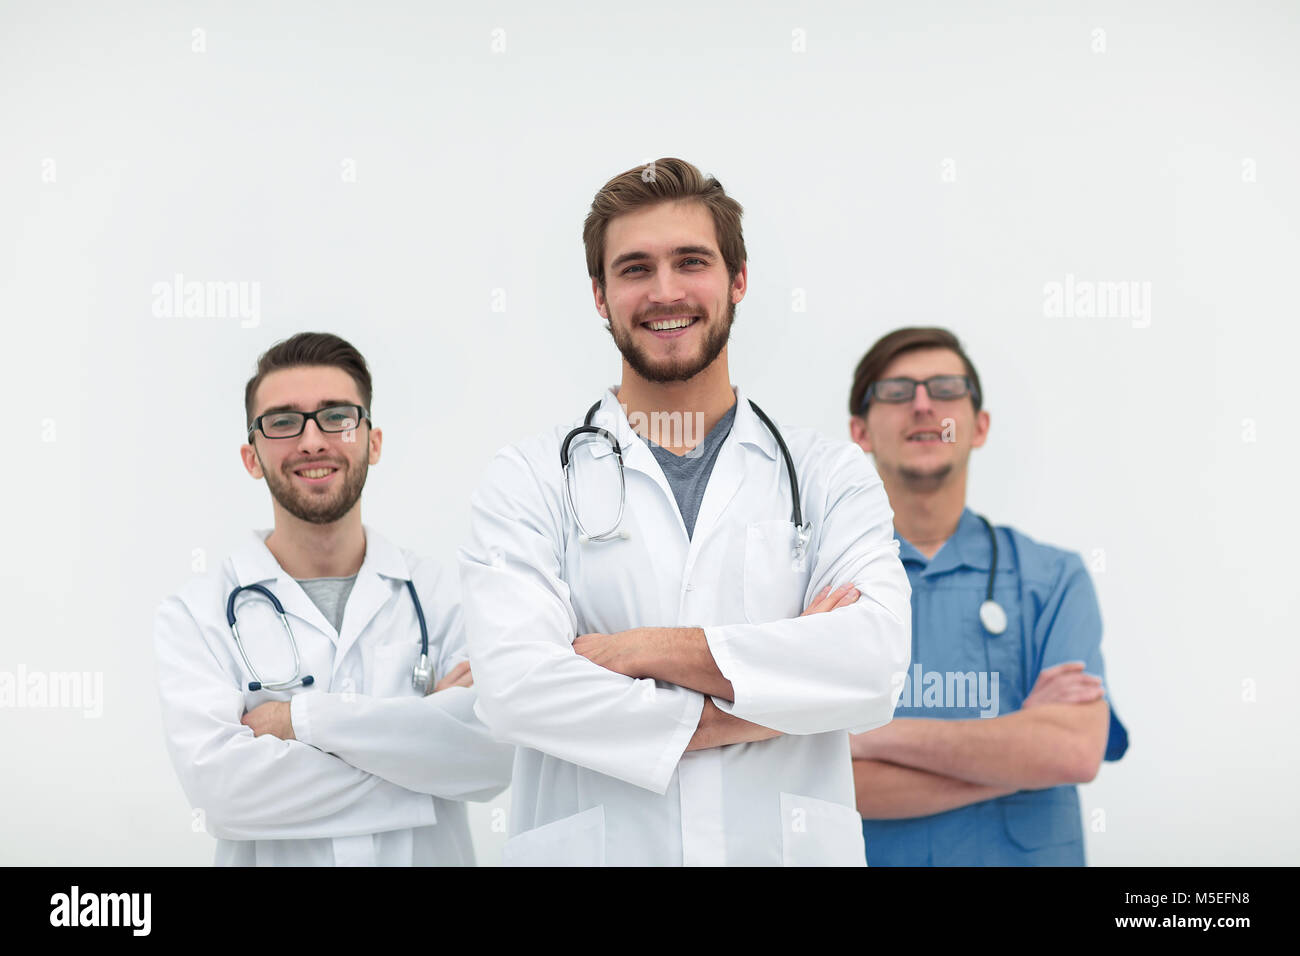 group of successful medical workers - Stock Image